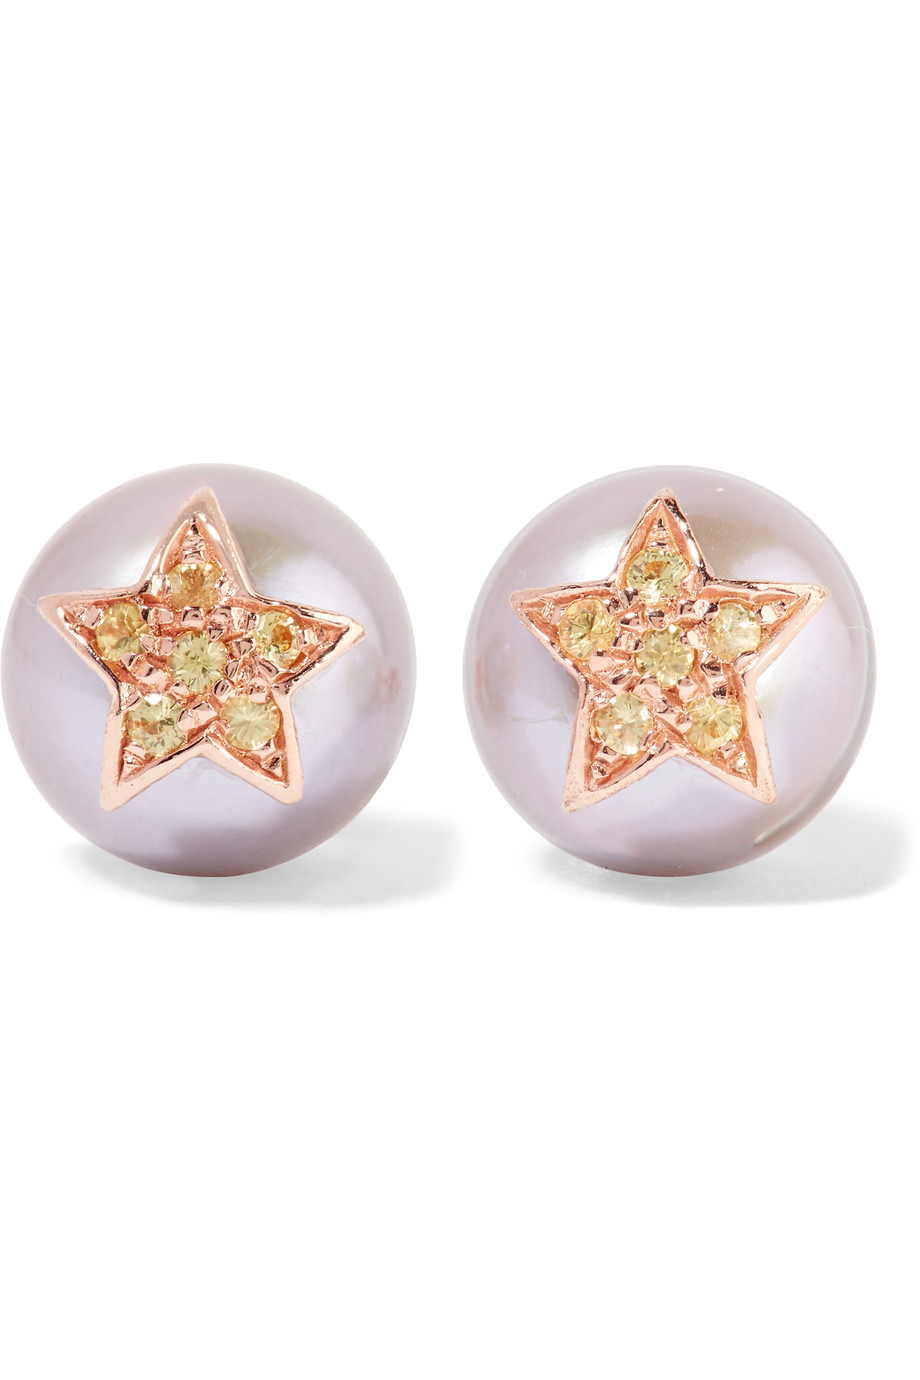 Carolina Bucci 18-Karat Rose Gold, Pearl and Sapphire Earrings, Rose Gold/White, Women's